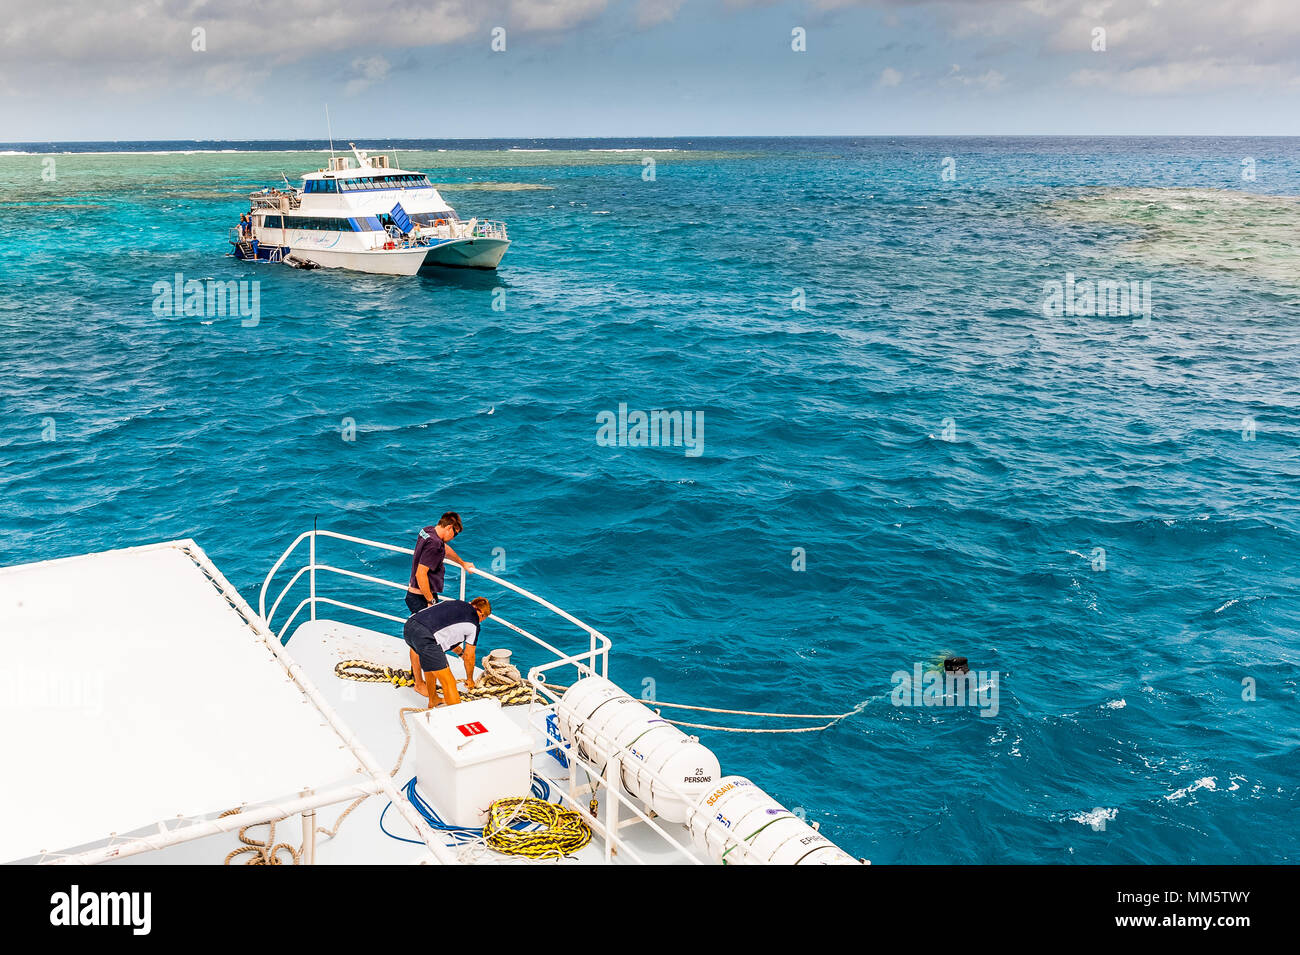 Live Aboard Boats Stock Photos & Live Aboard Boats Stock Images - Alamy